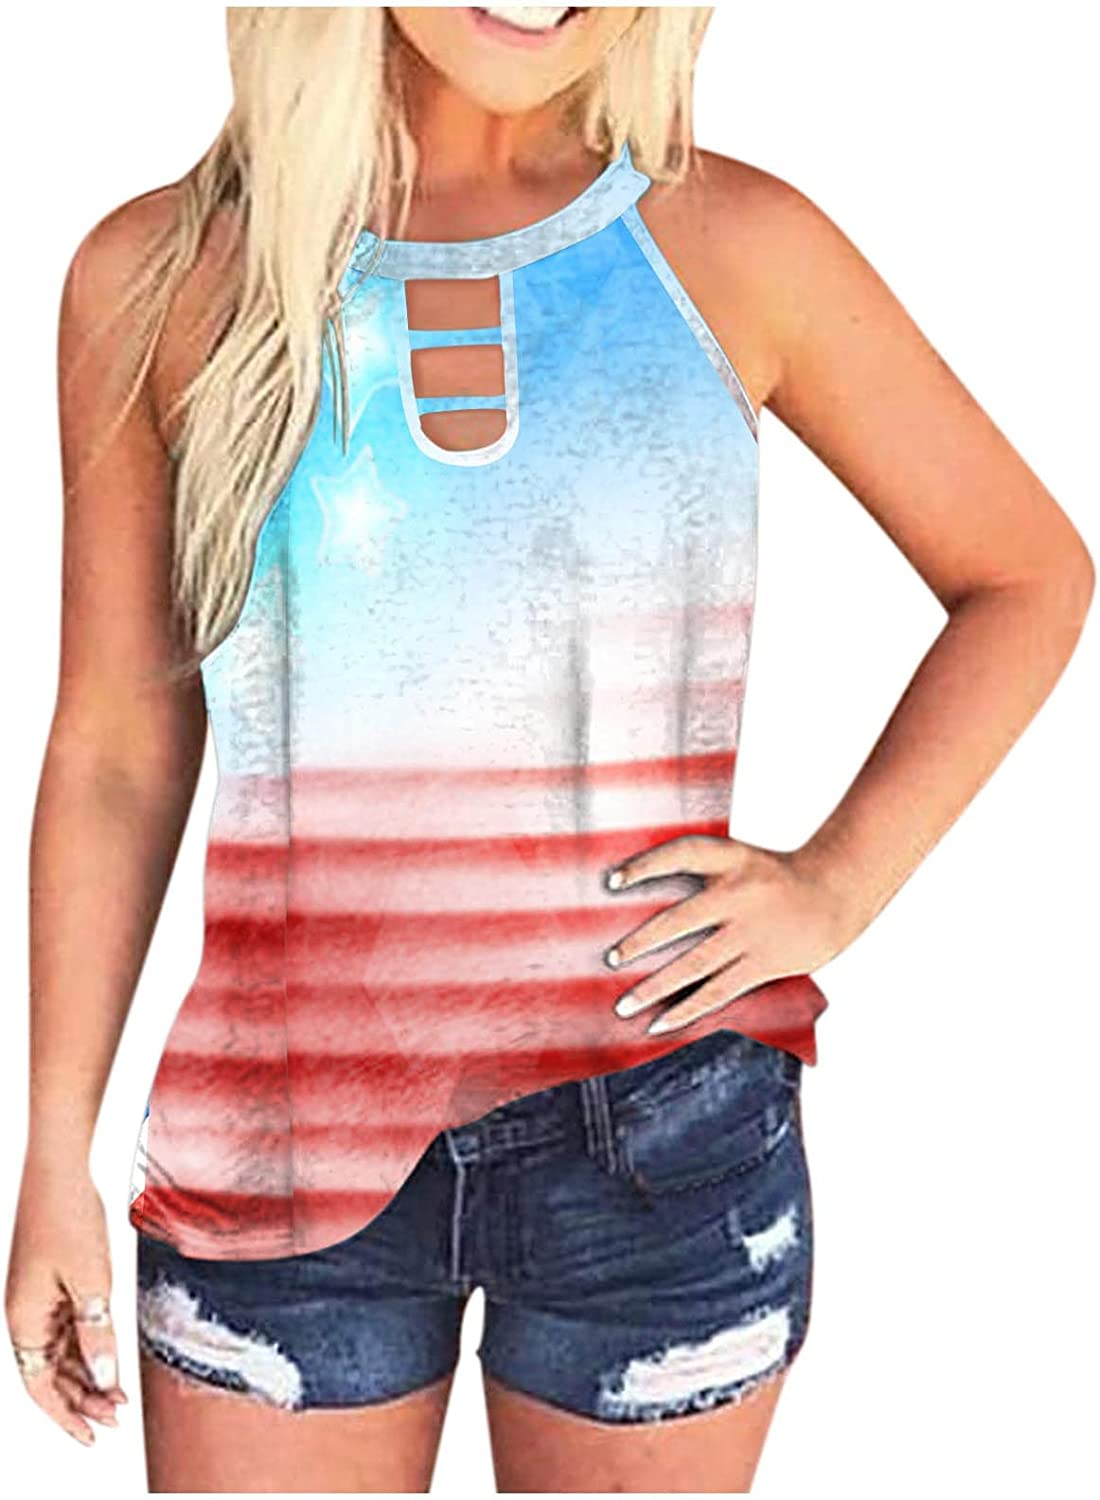 Gerichy Tank Tops for Women, Womens Sleeveless Blouses Tops Summer Casual Plus Size Loose Fit Tunic Shirts Tops Tees